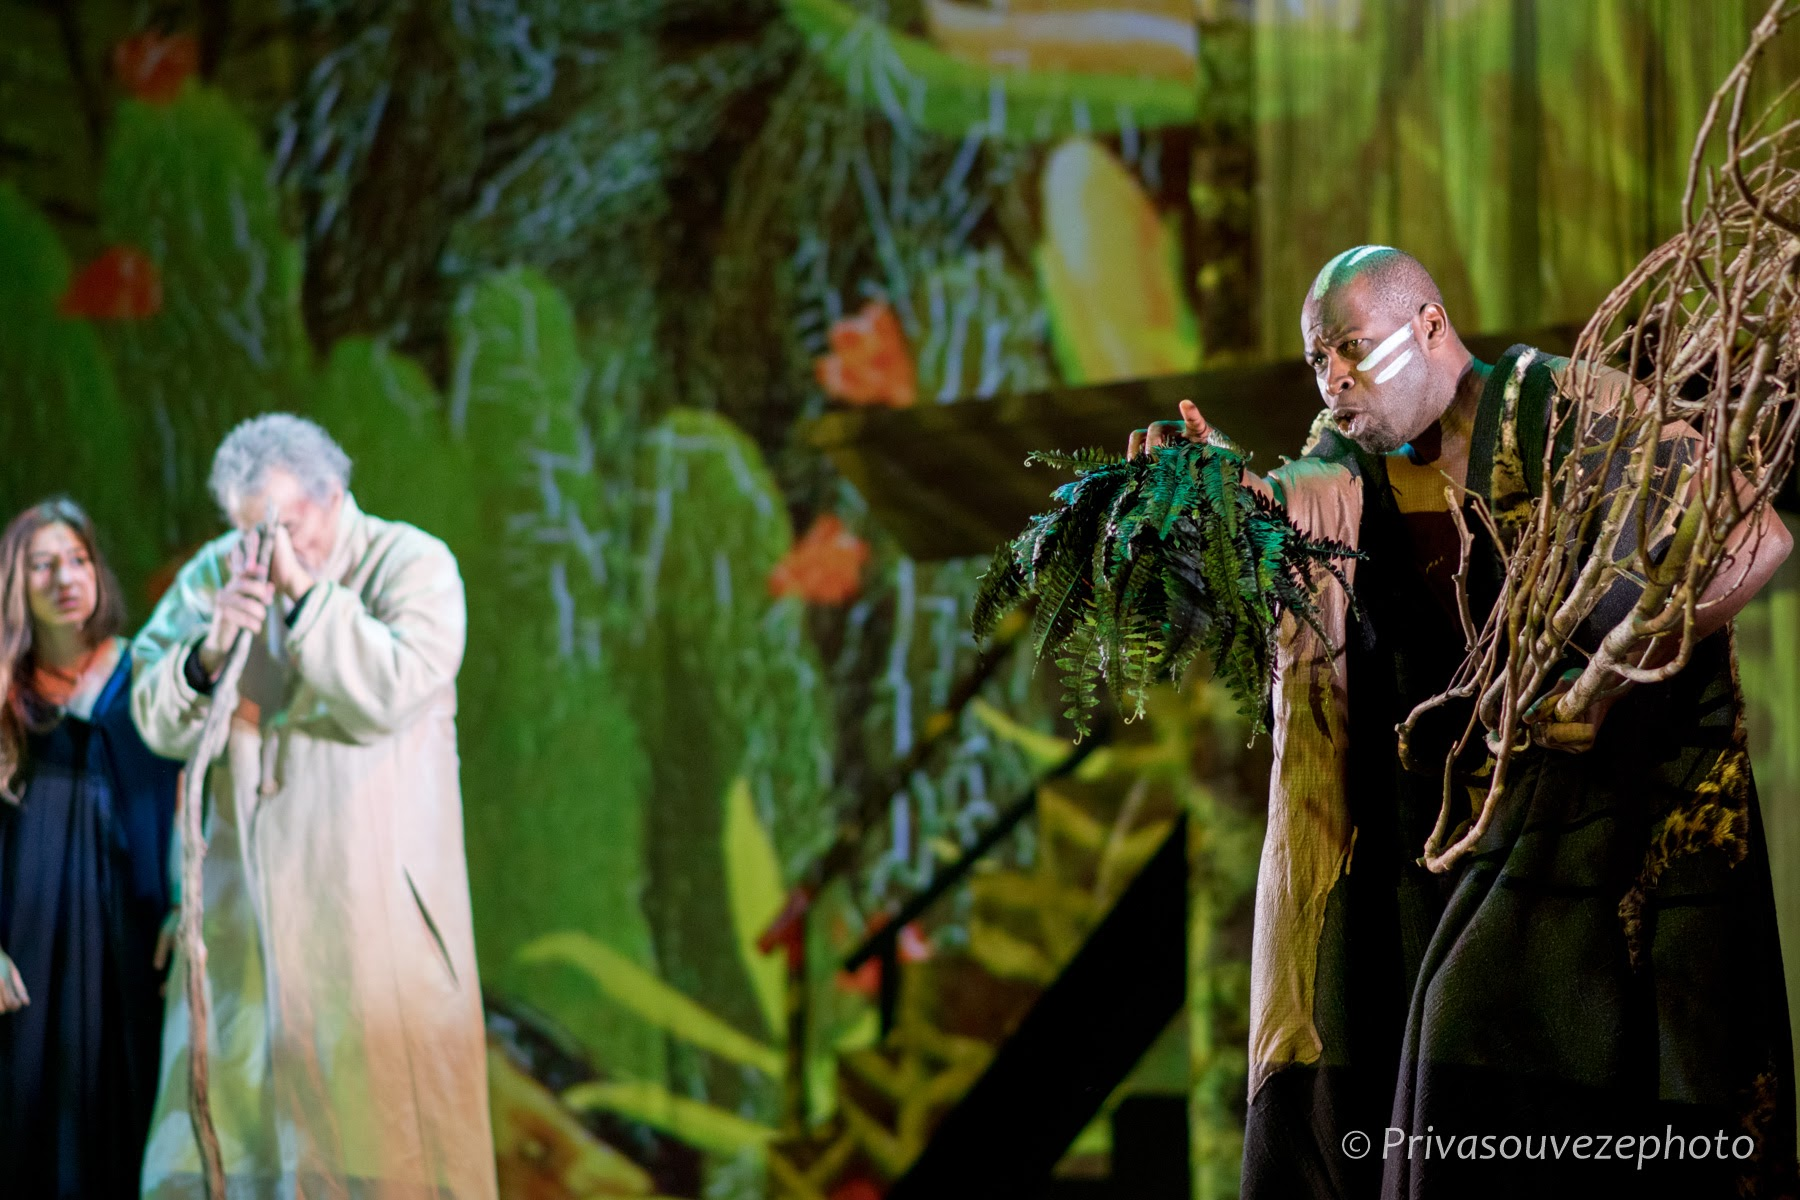 Josephine Berry as  Miranda,  Philippe Dusigne as  Prospero   and Hervé Goffings as  Caliban.